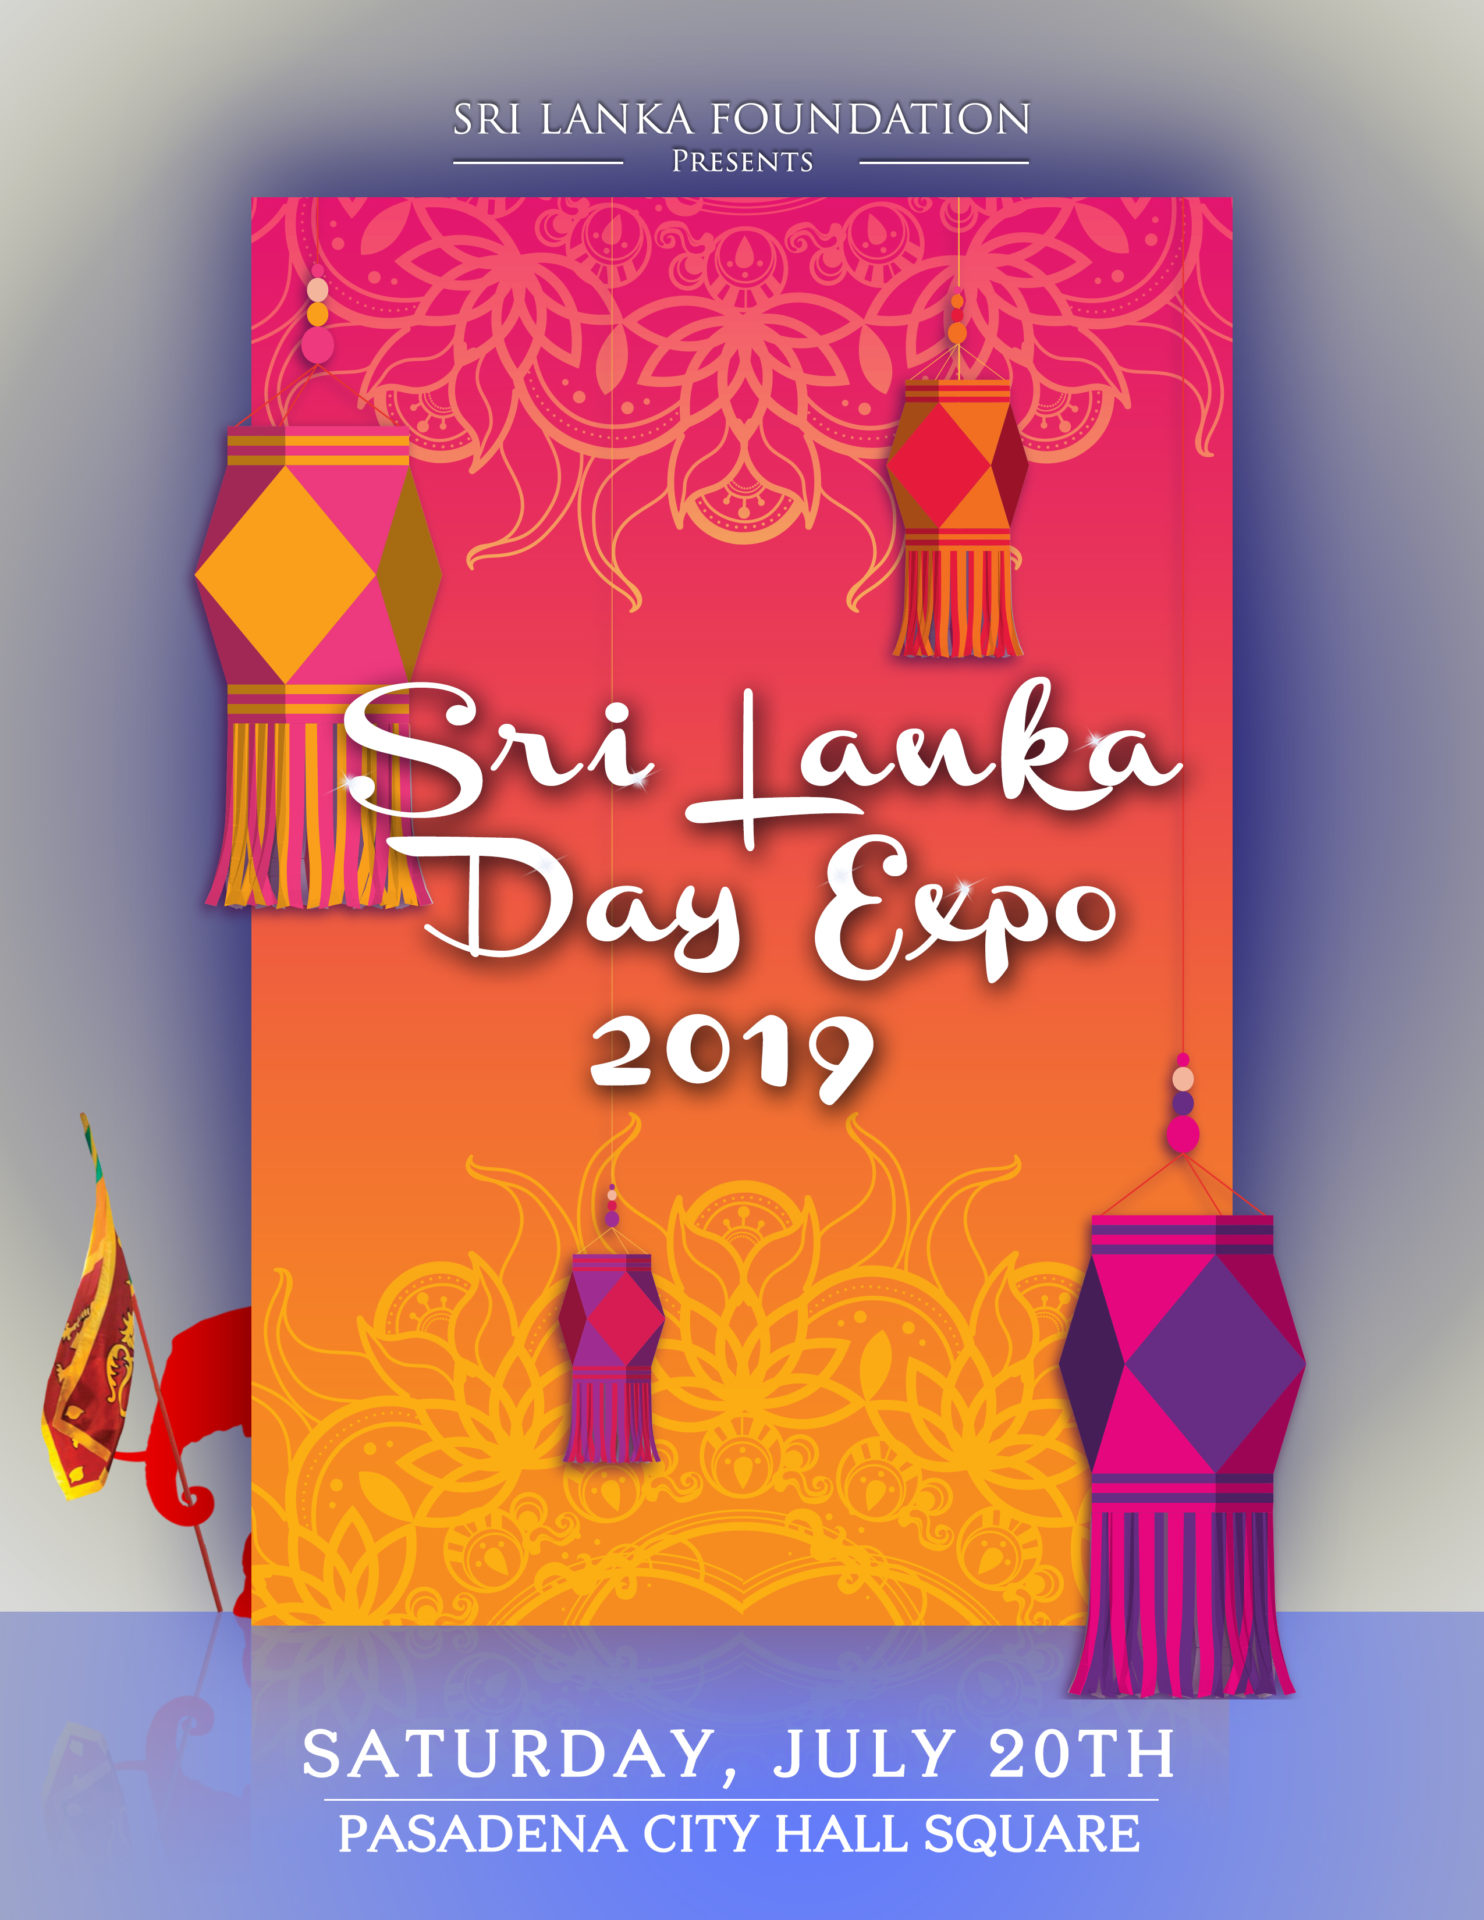 Sri Lanka Day Expo 2019